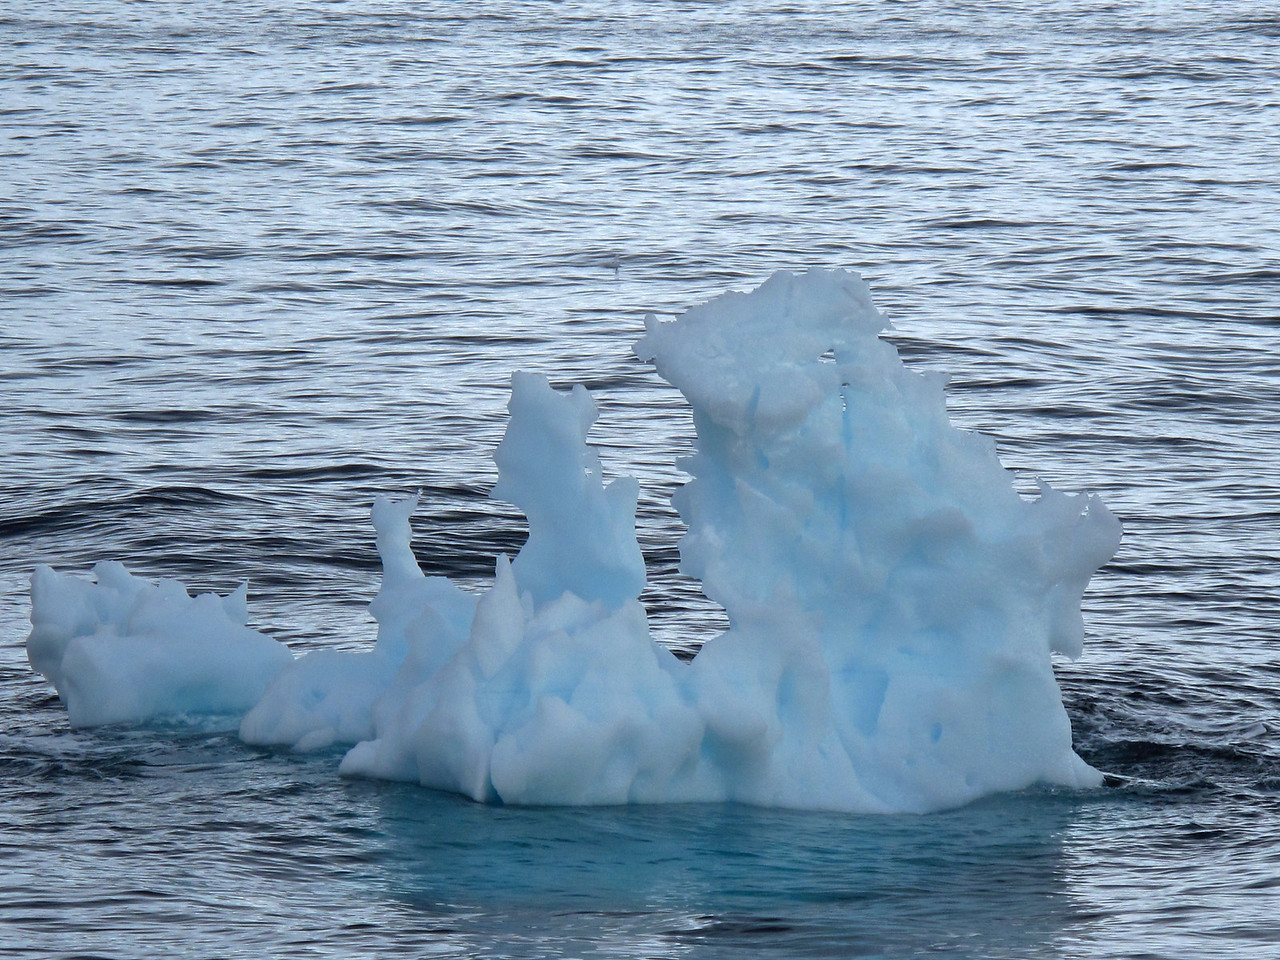 """When an iceberg melts, it makes a fizzing sound called """"Bergie Seltzer."""" This sound is made when compressed air bubbles trapped in the iceberg pop. The bubbles come from air trapped in snow layers that later become glacial ice."""